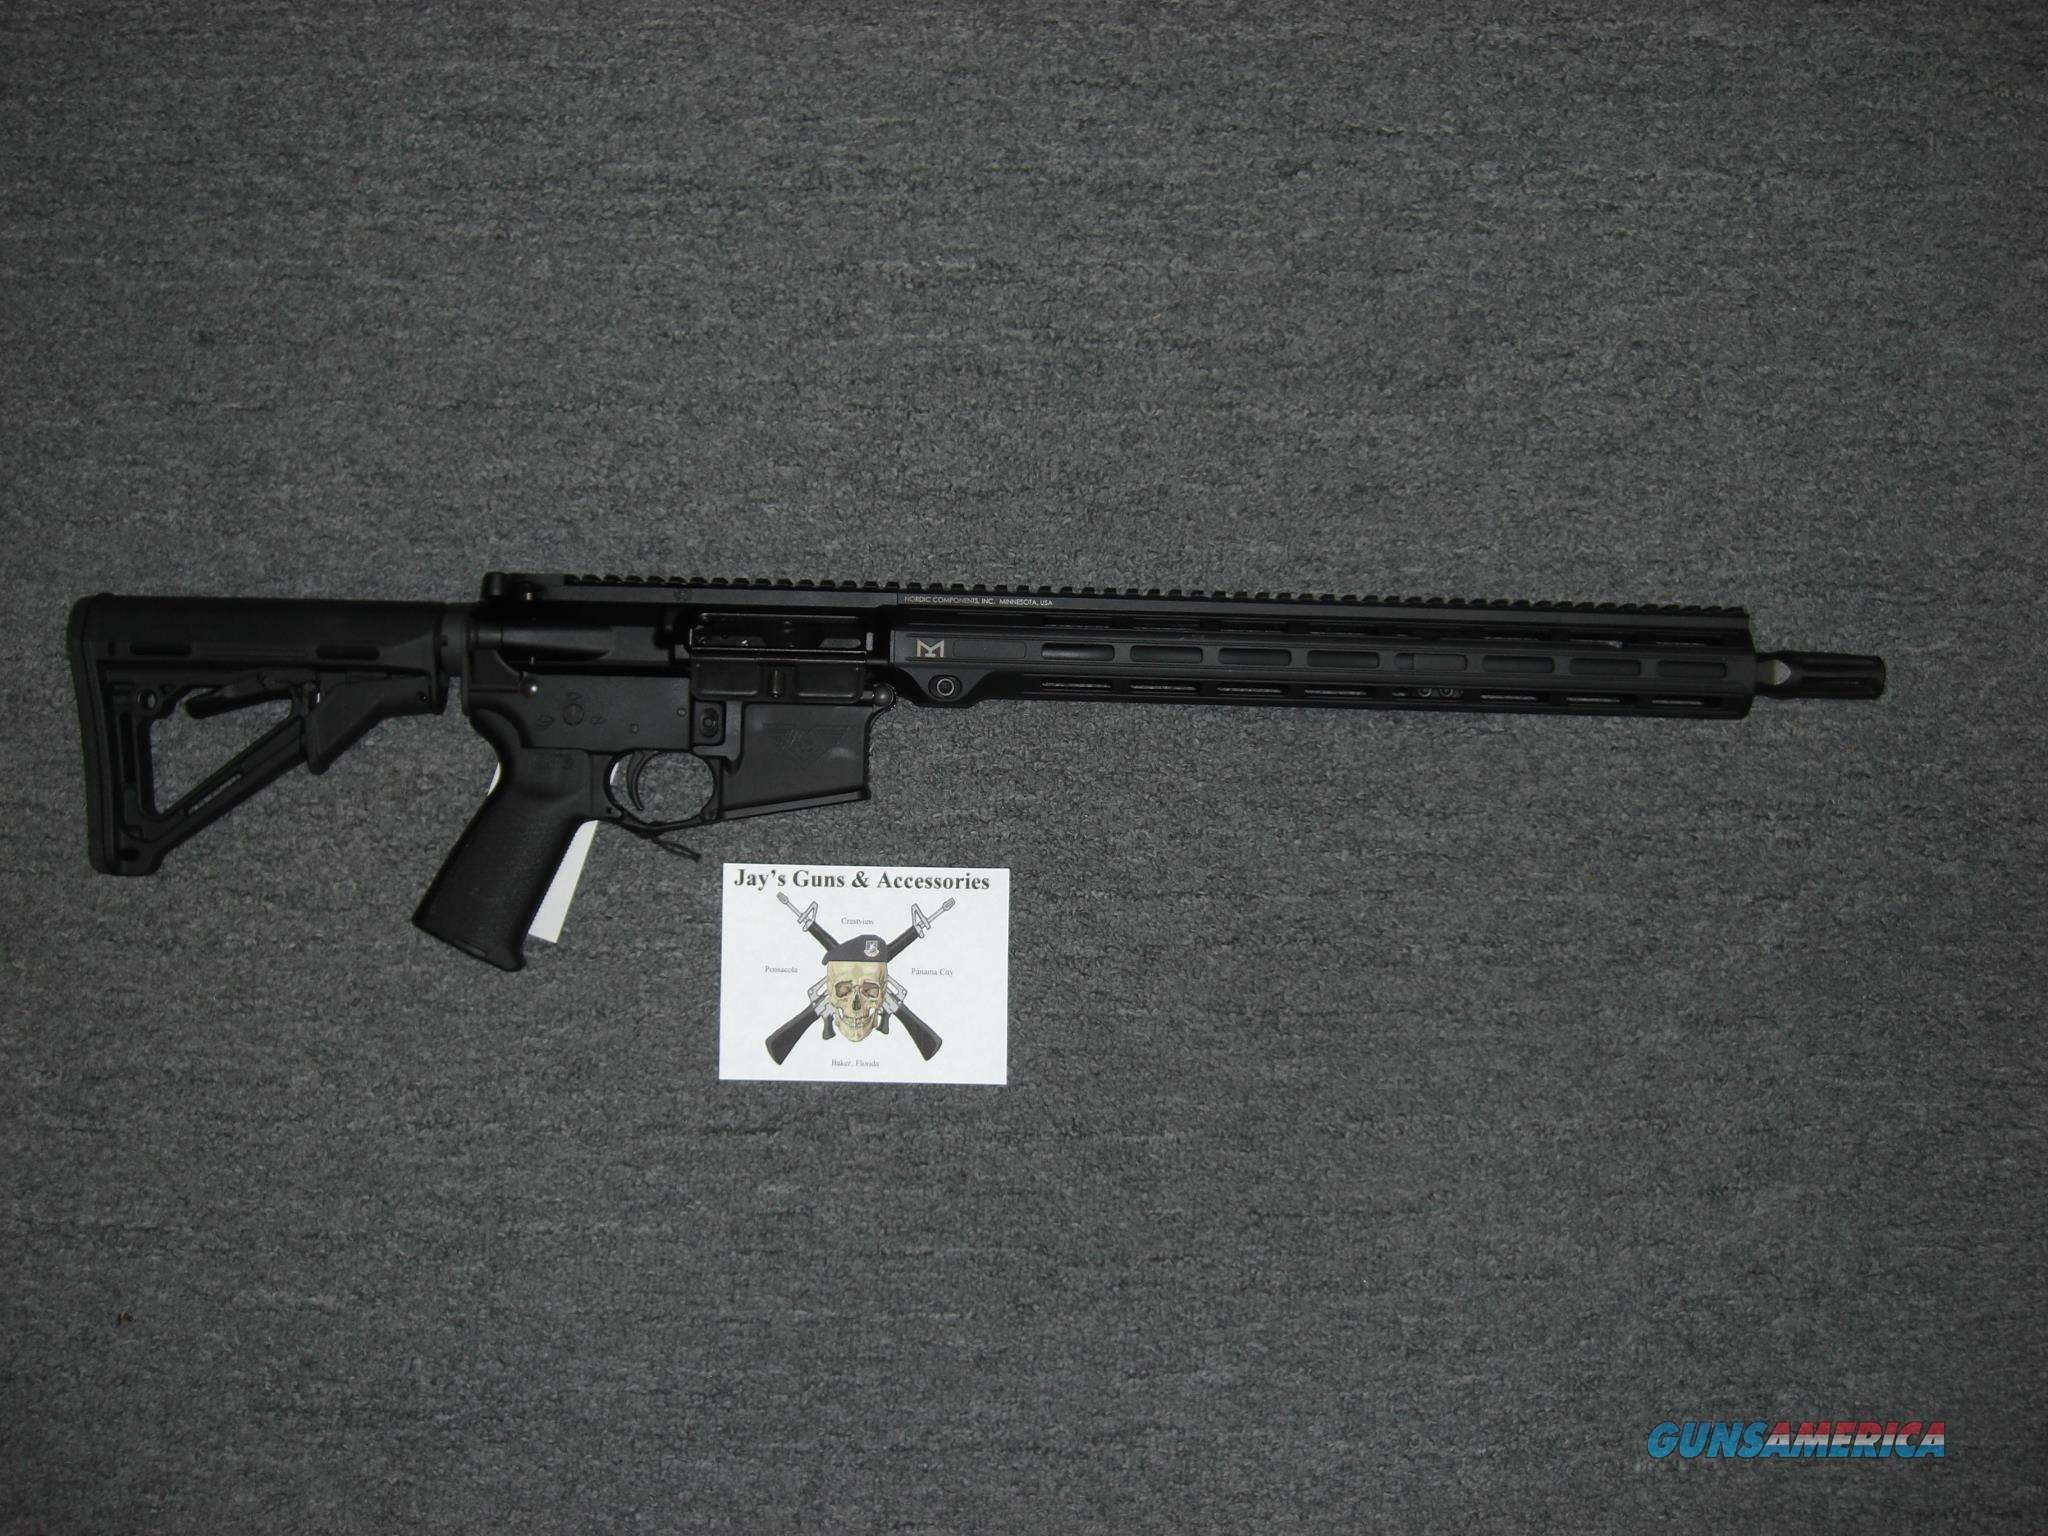 Nordic Components NC-15   Guns > Rifles > AR-15 Rifles - Small Manufacturers > Complete Rifle